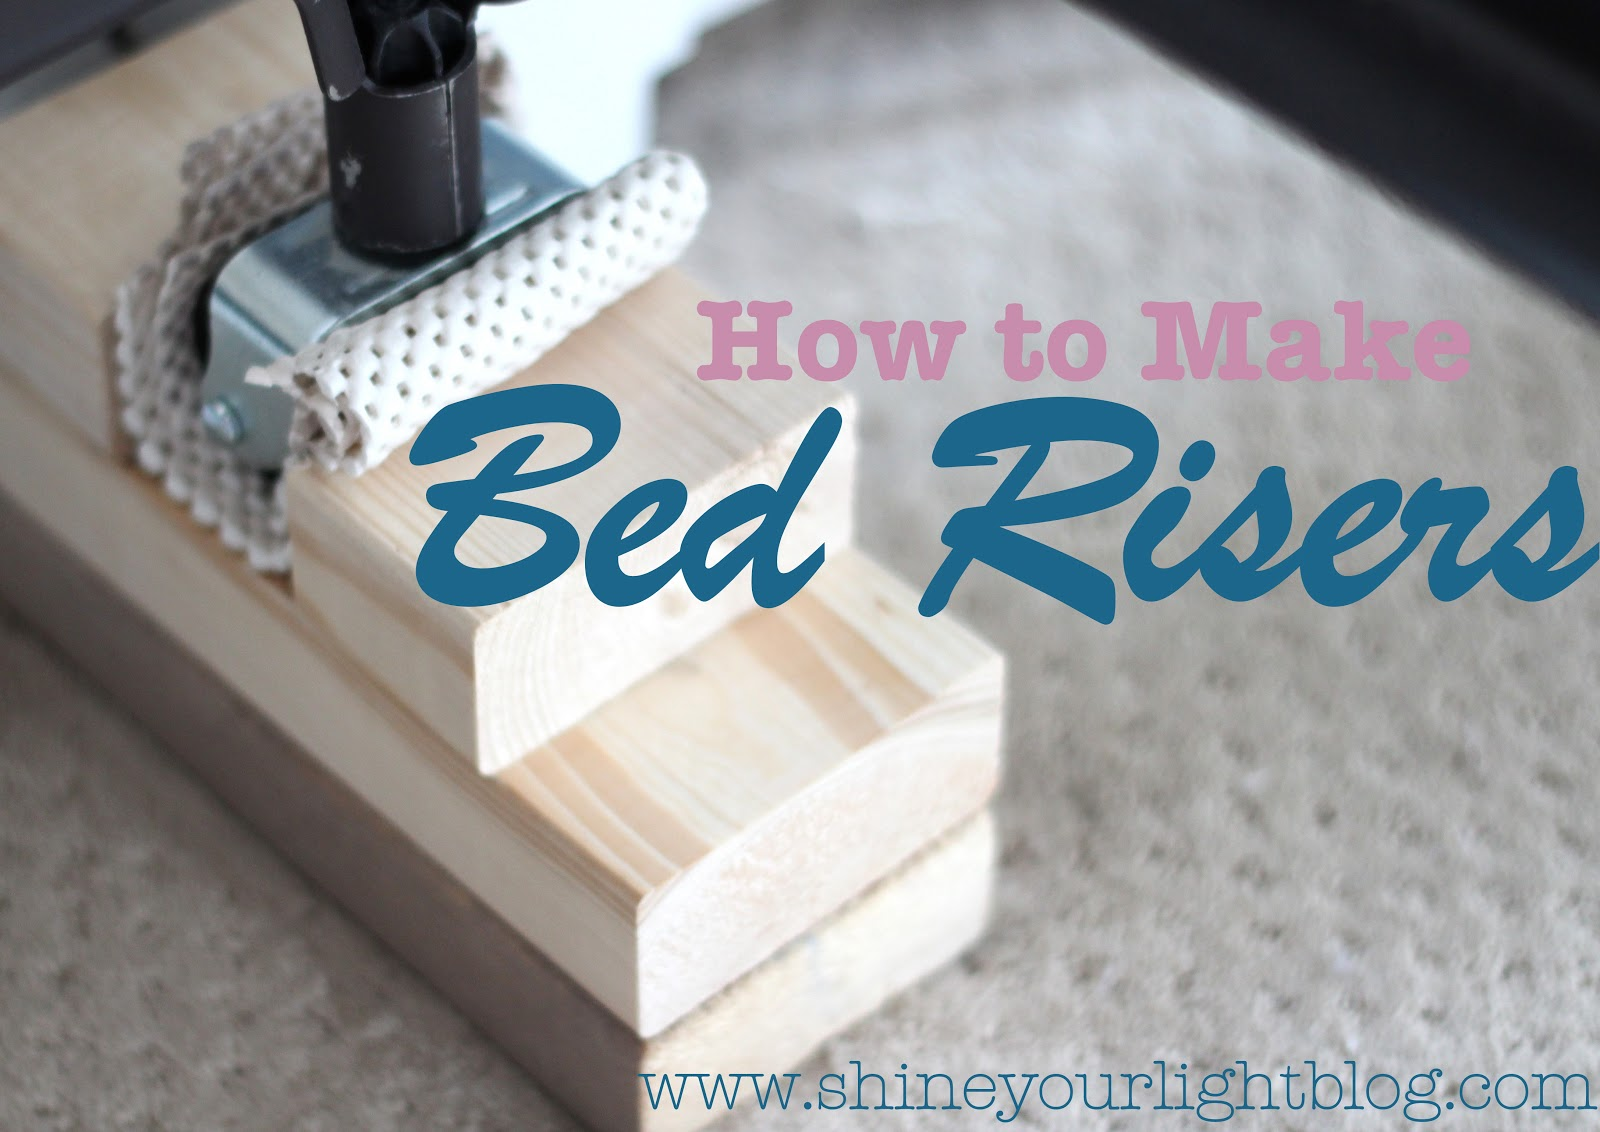 How To Make Bed Risers Shine Your Light